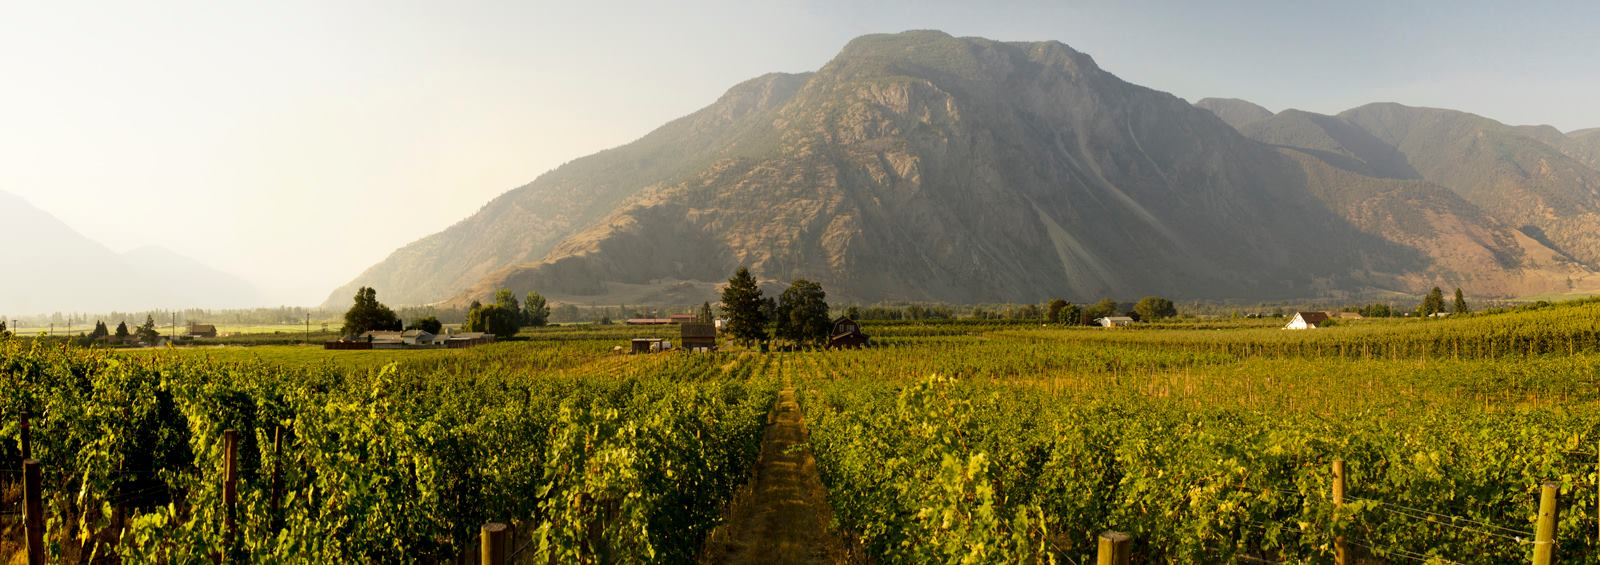 Similkameen Wineries Association becomes Similkameen Independent Winegrowers as it evolves its brand identity.